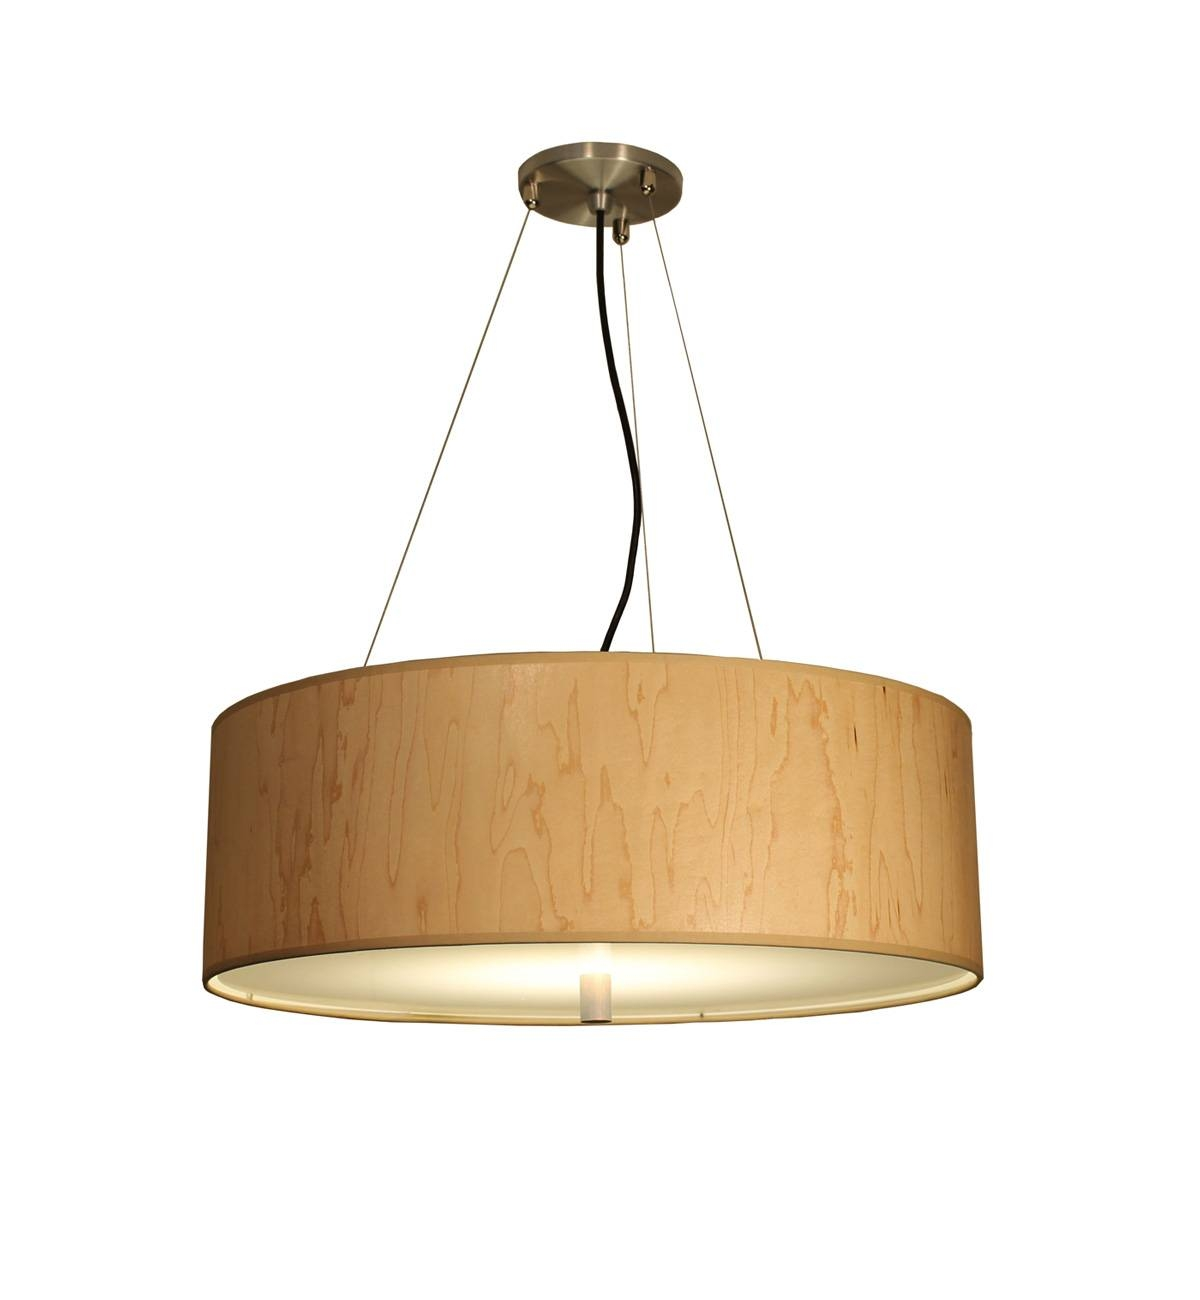 Donovan Lighting, Ltd. - Contemporary And Art Deco Lighting regarding Wood Veneer Pendant Lights (Image 5 of 15)